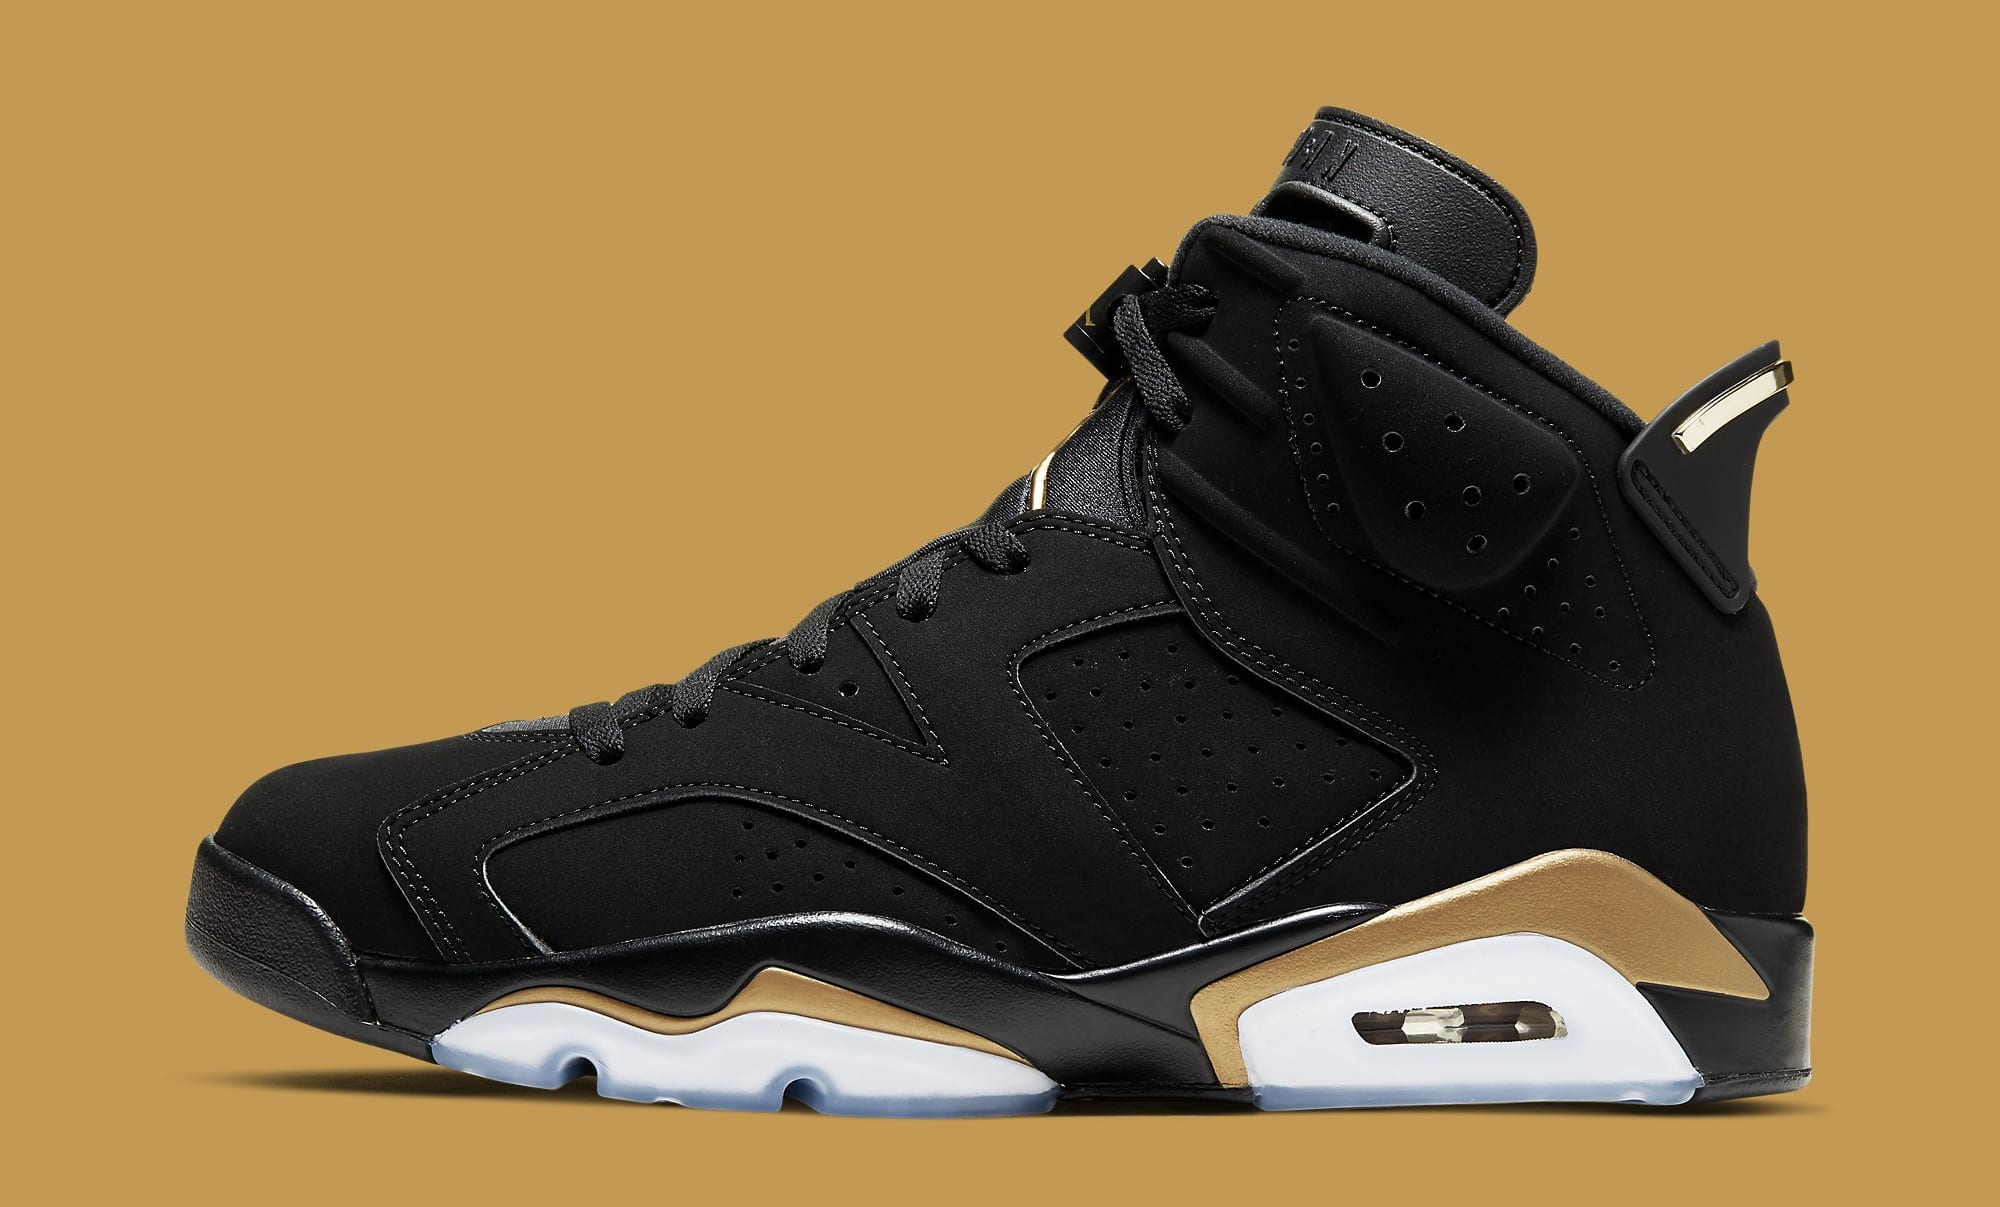 Air Jordan 6 VI Retro 'DMP' CT4954-007 Lateral